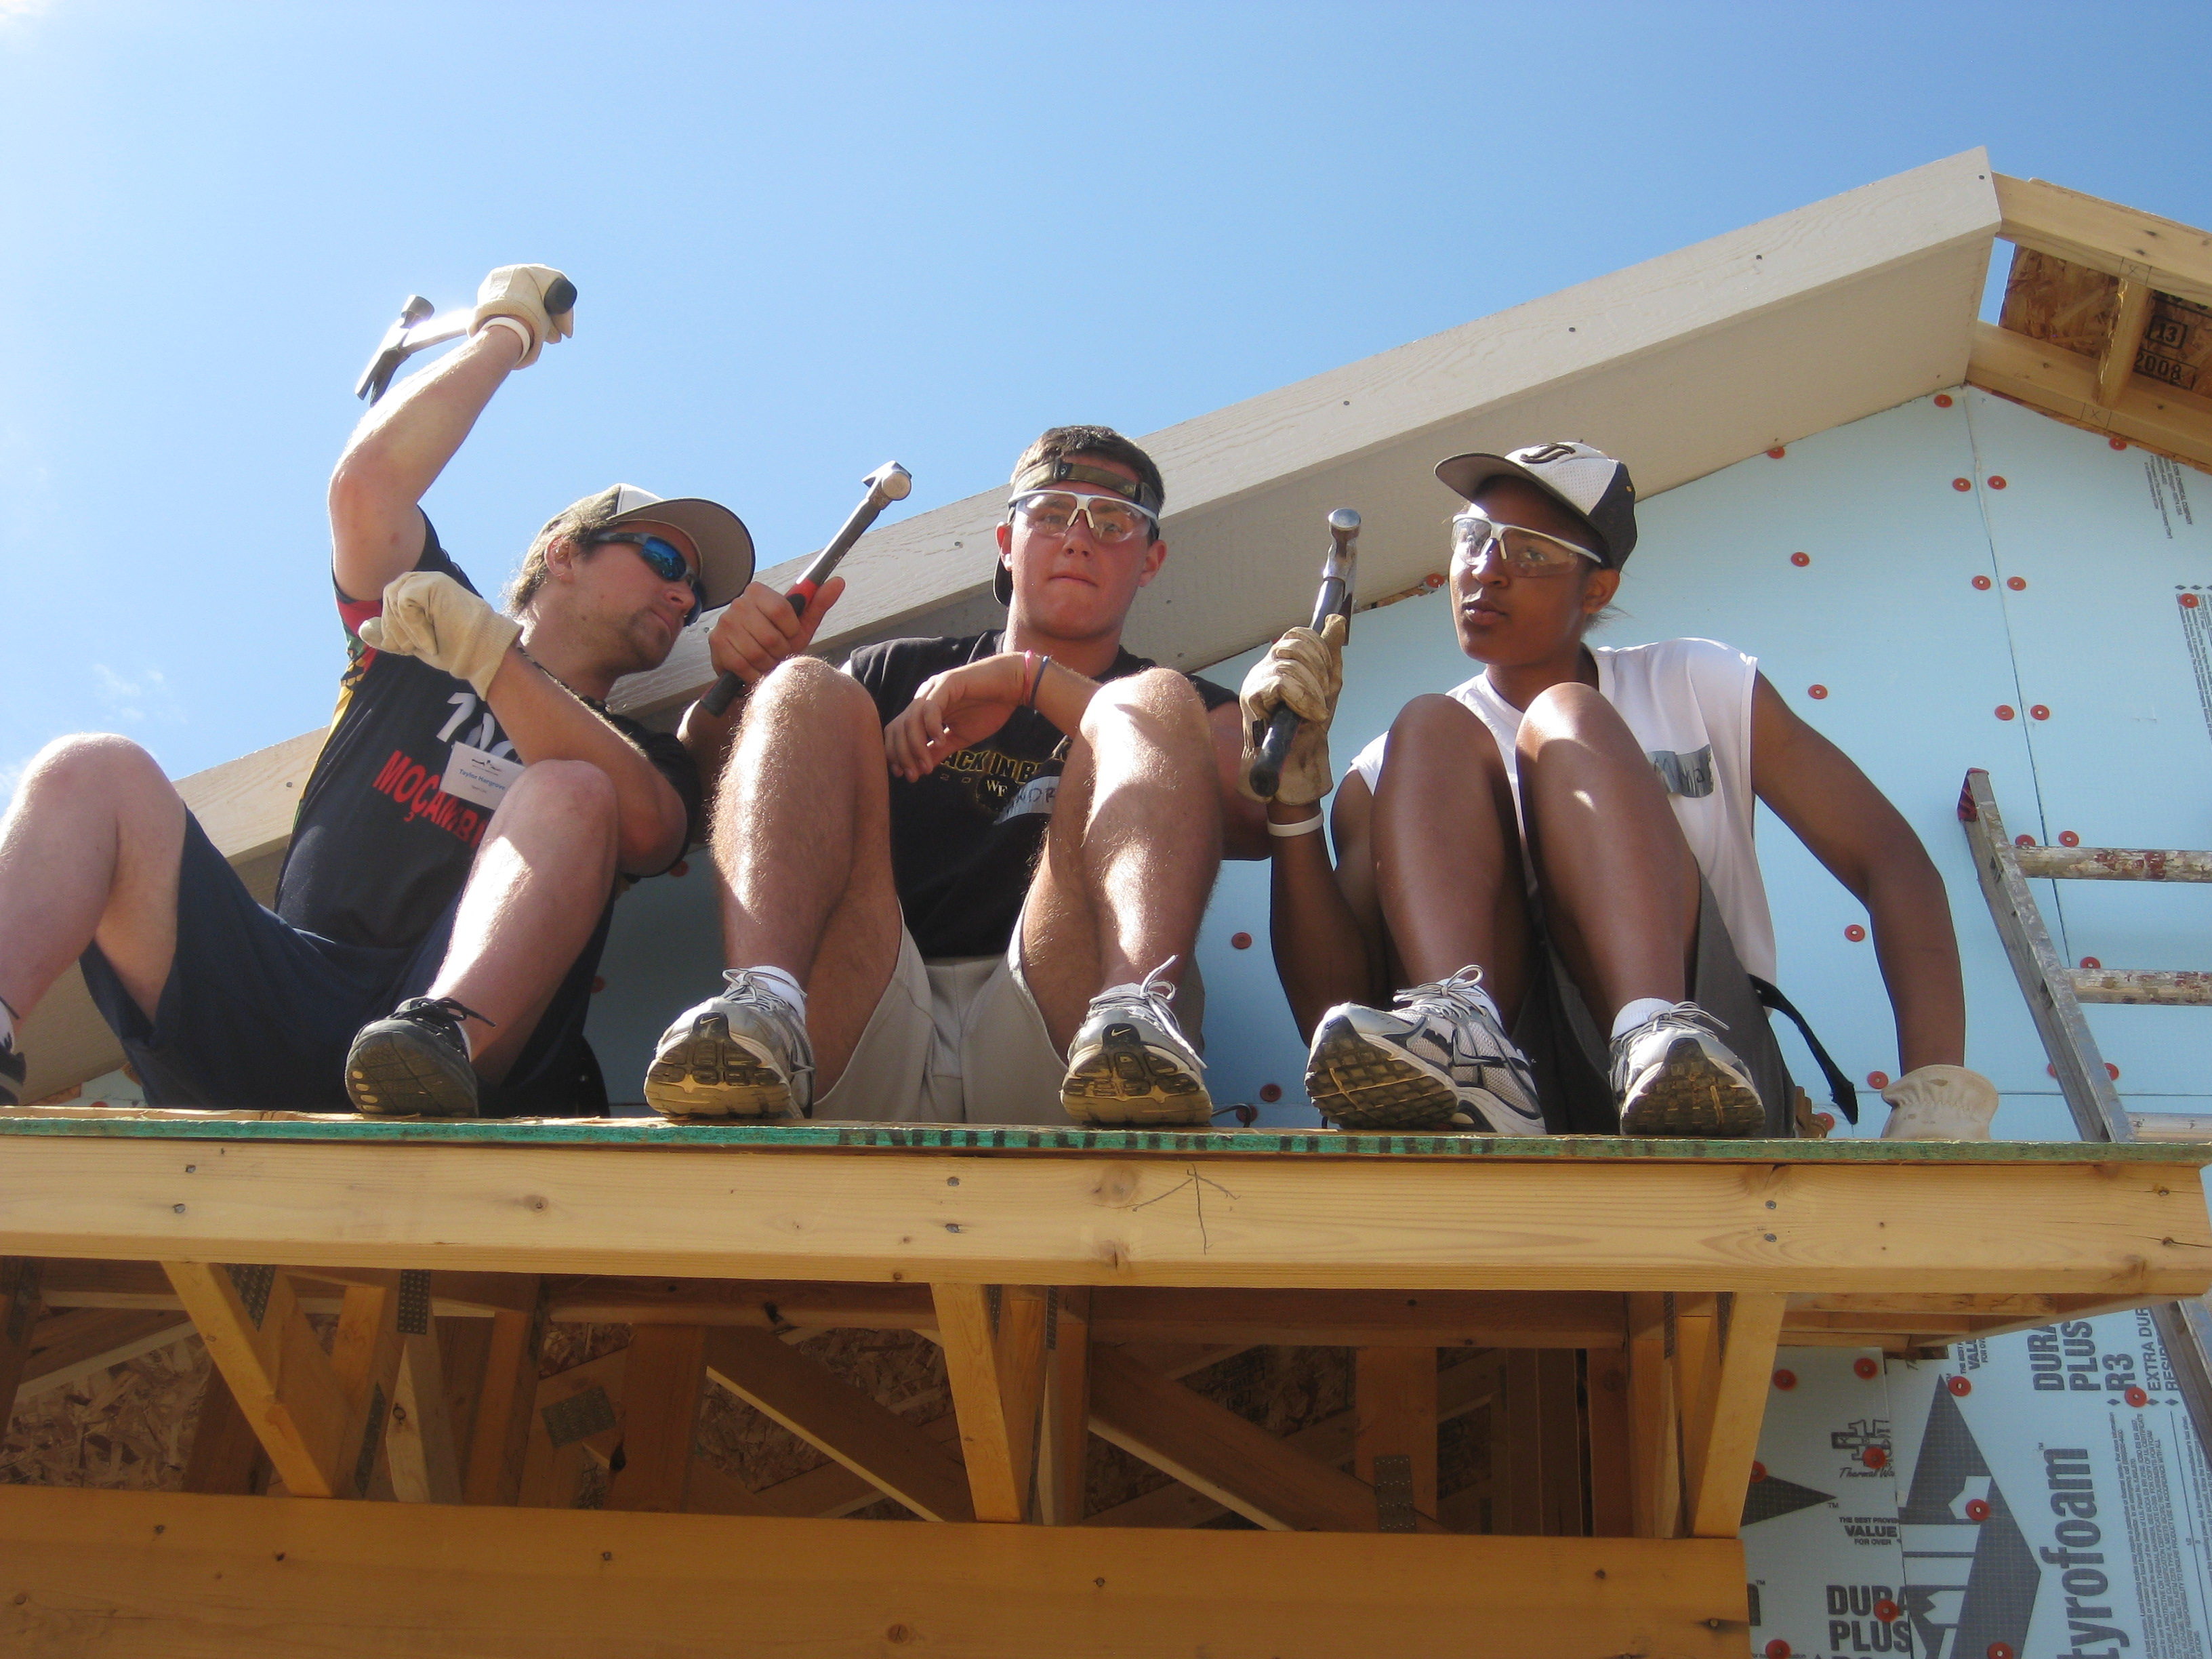 Saturday after the SPECIAL I took a group of 10 athletes to Habitat for Humanity